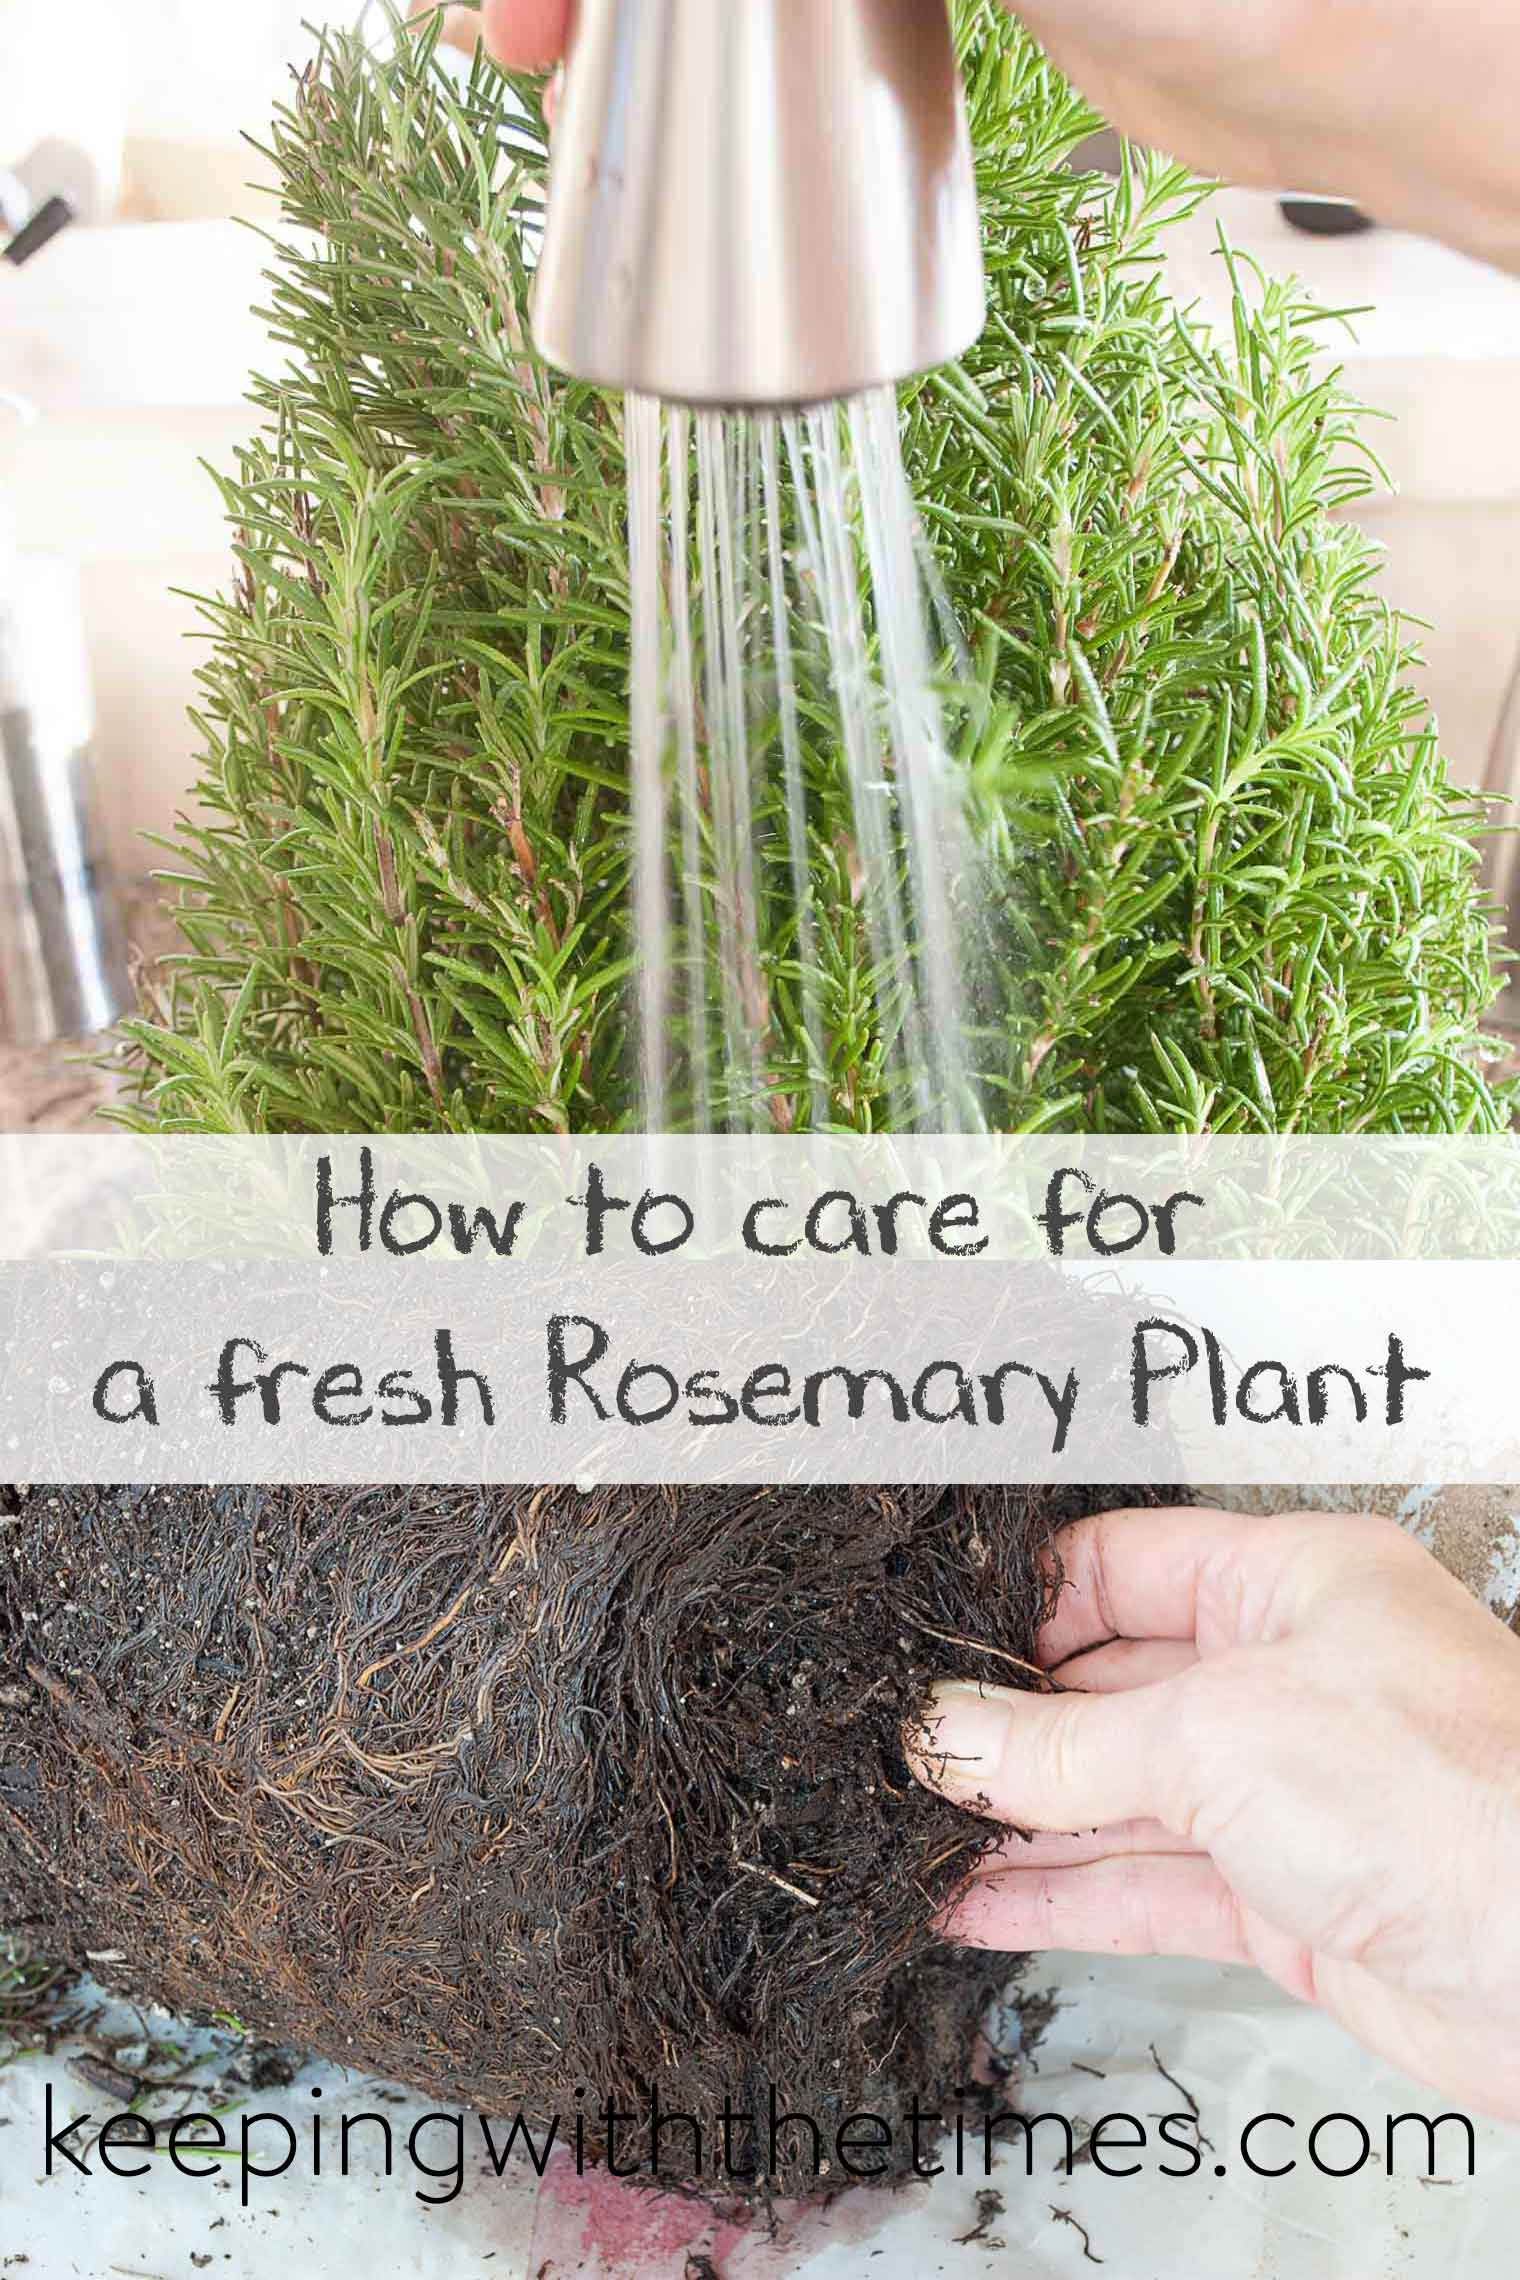 How to Care for Fresh Rosemary, Tips for keeping your rosemary plant vigourous.